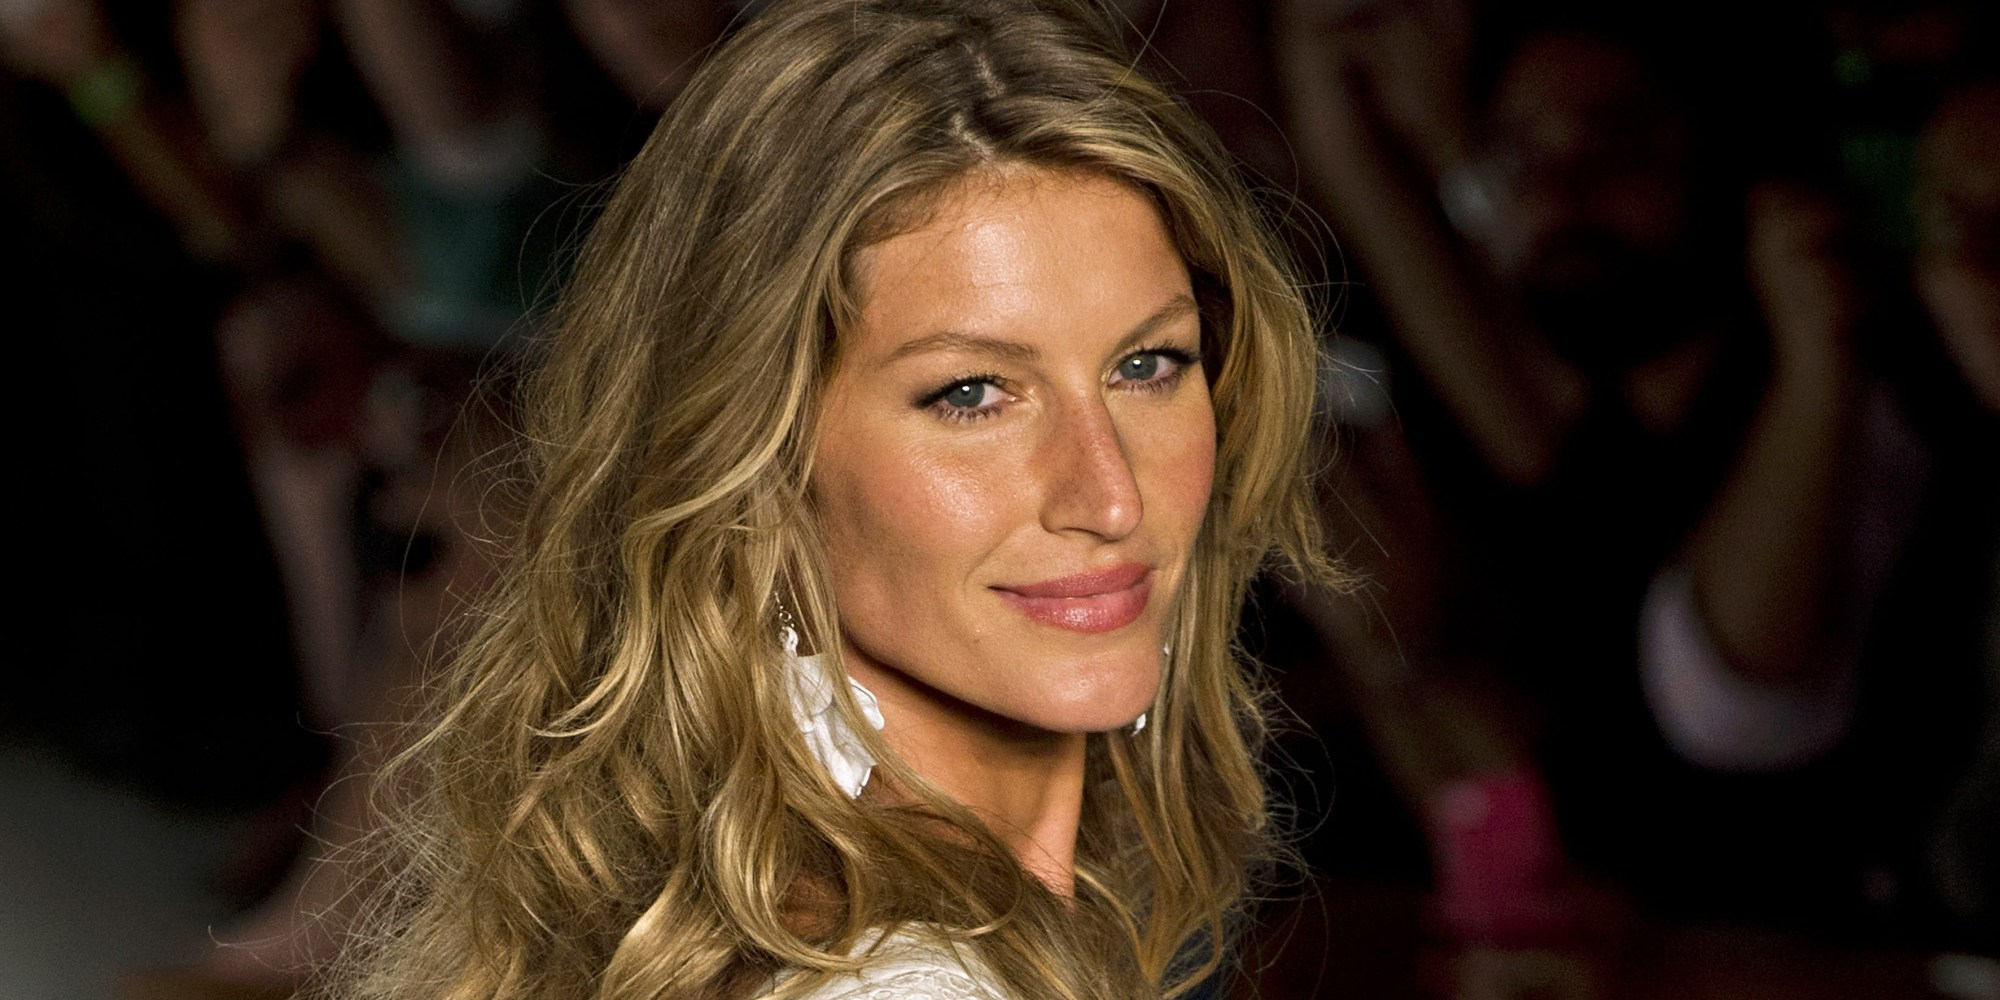 Gisele Bundchen Sports A Buzz Cut In New Balenciaga Ad ... Gisele Bundchen